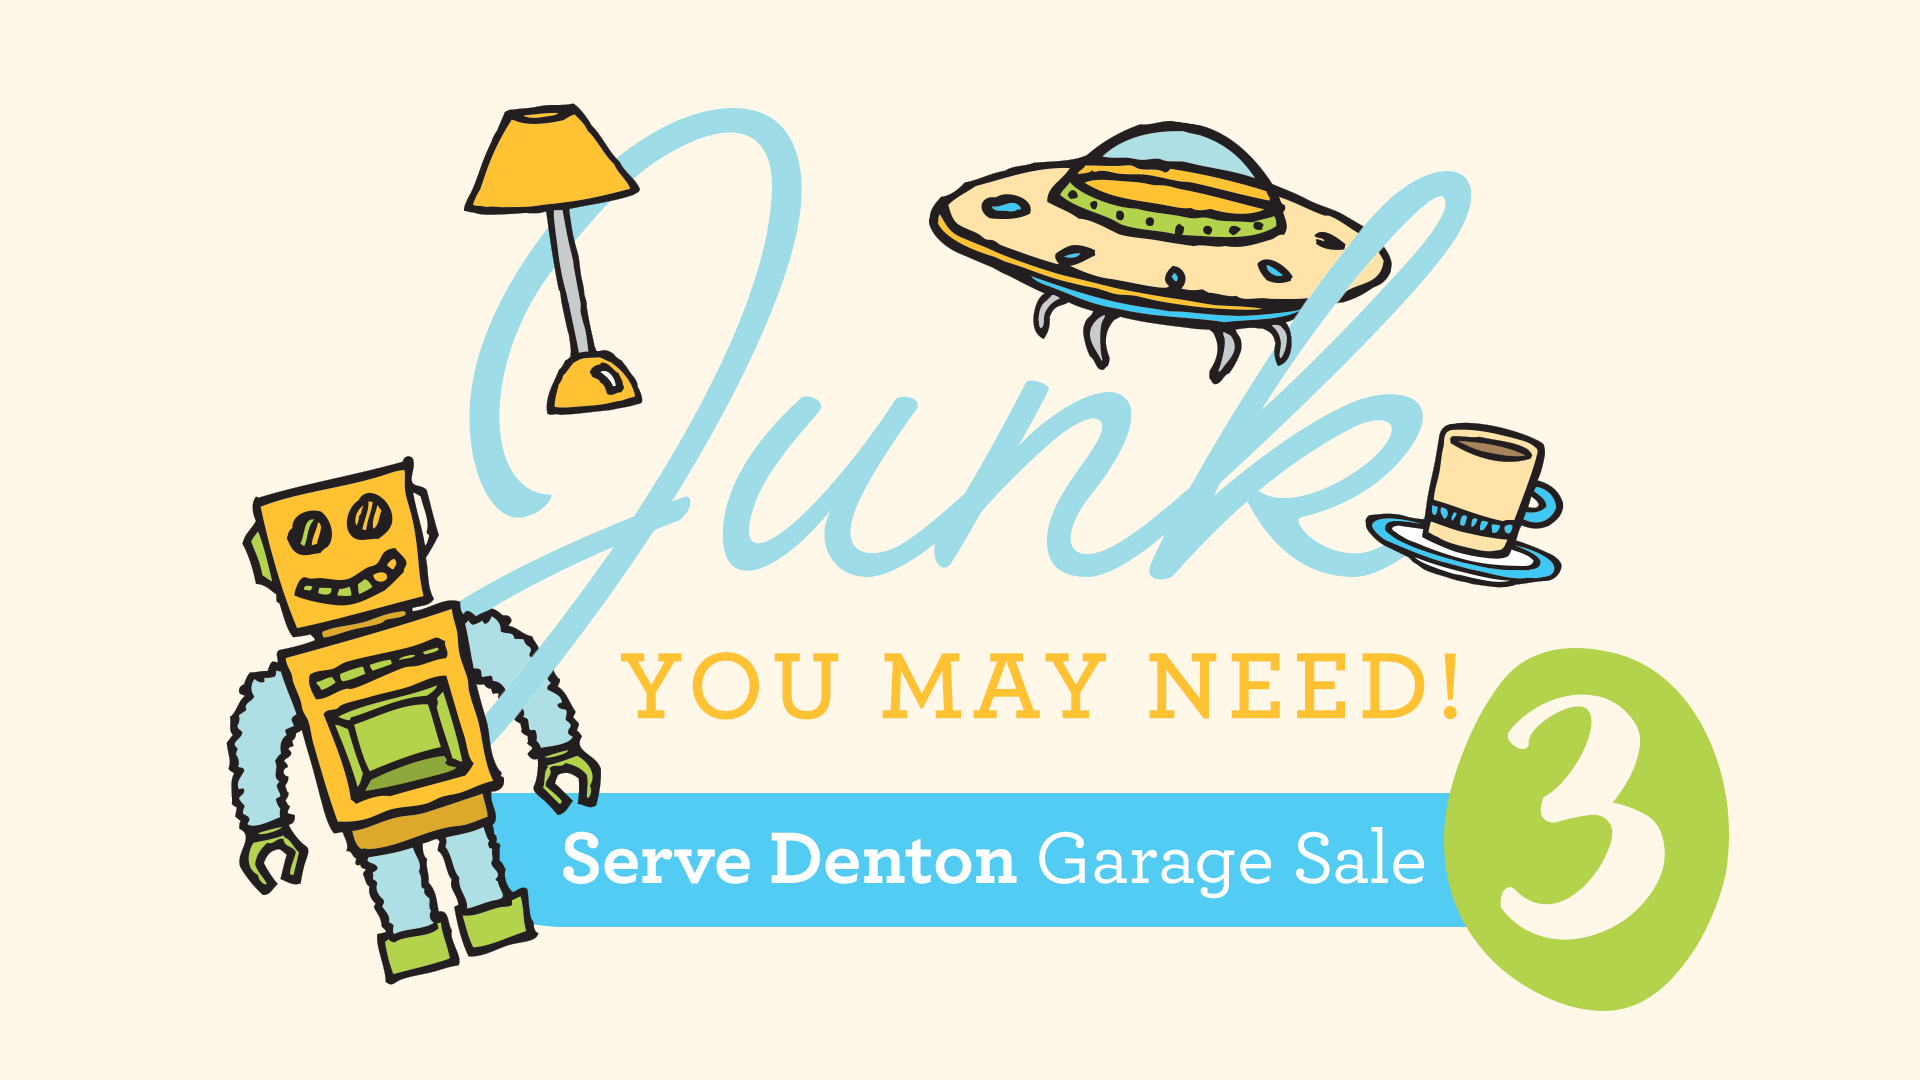 SD_Garage_Sale_Graphic_3.png